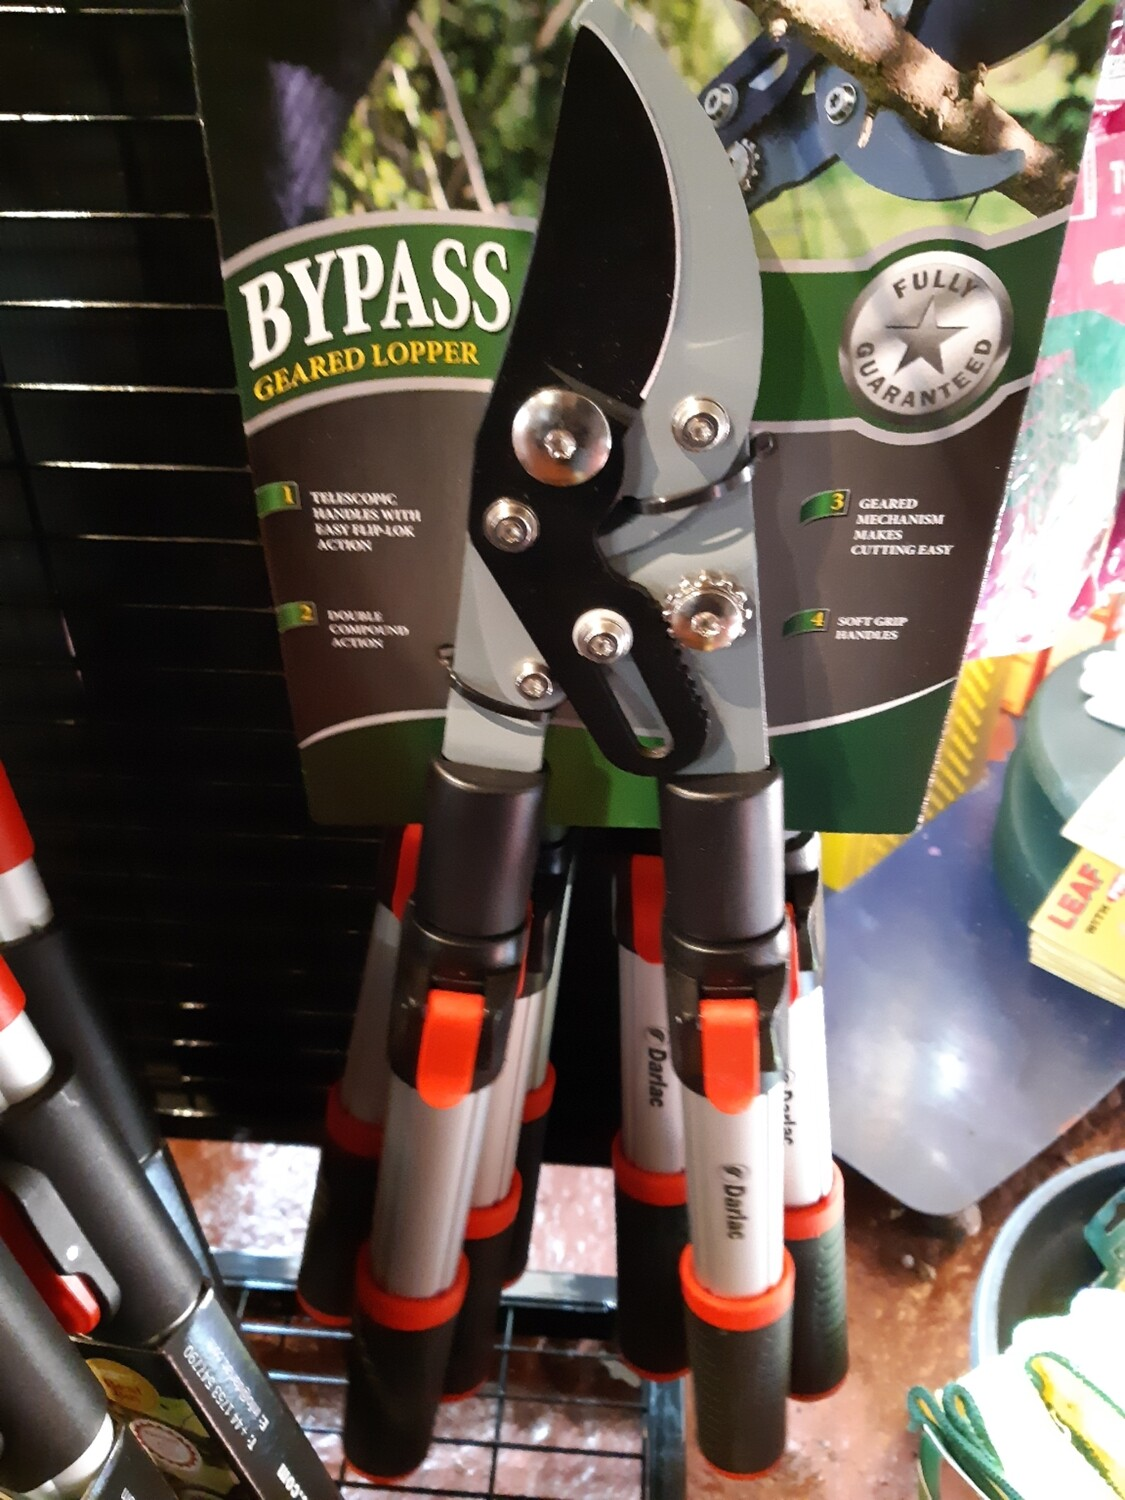 Zzz Darlac bypass geared loppers